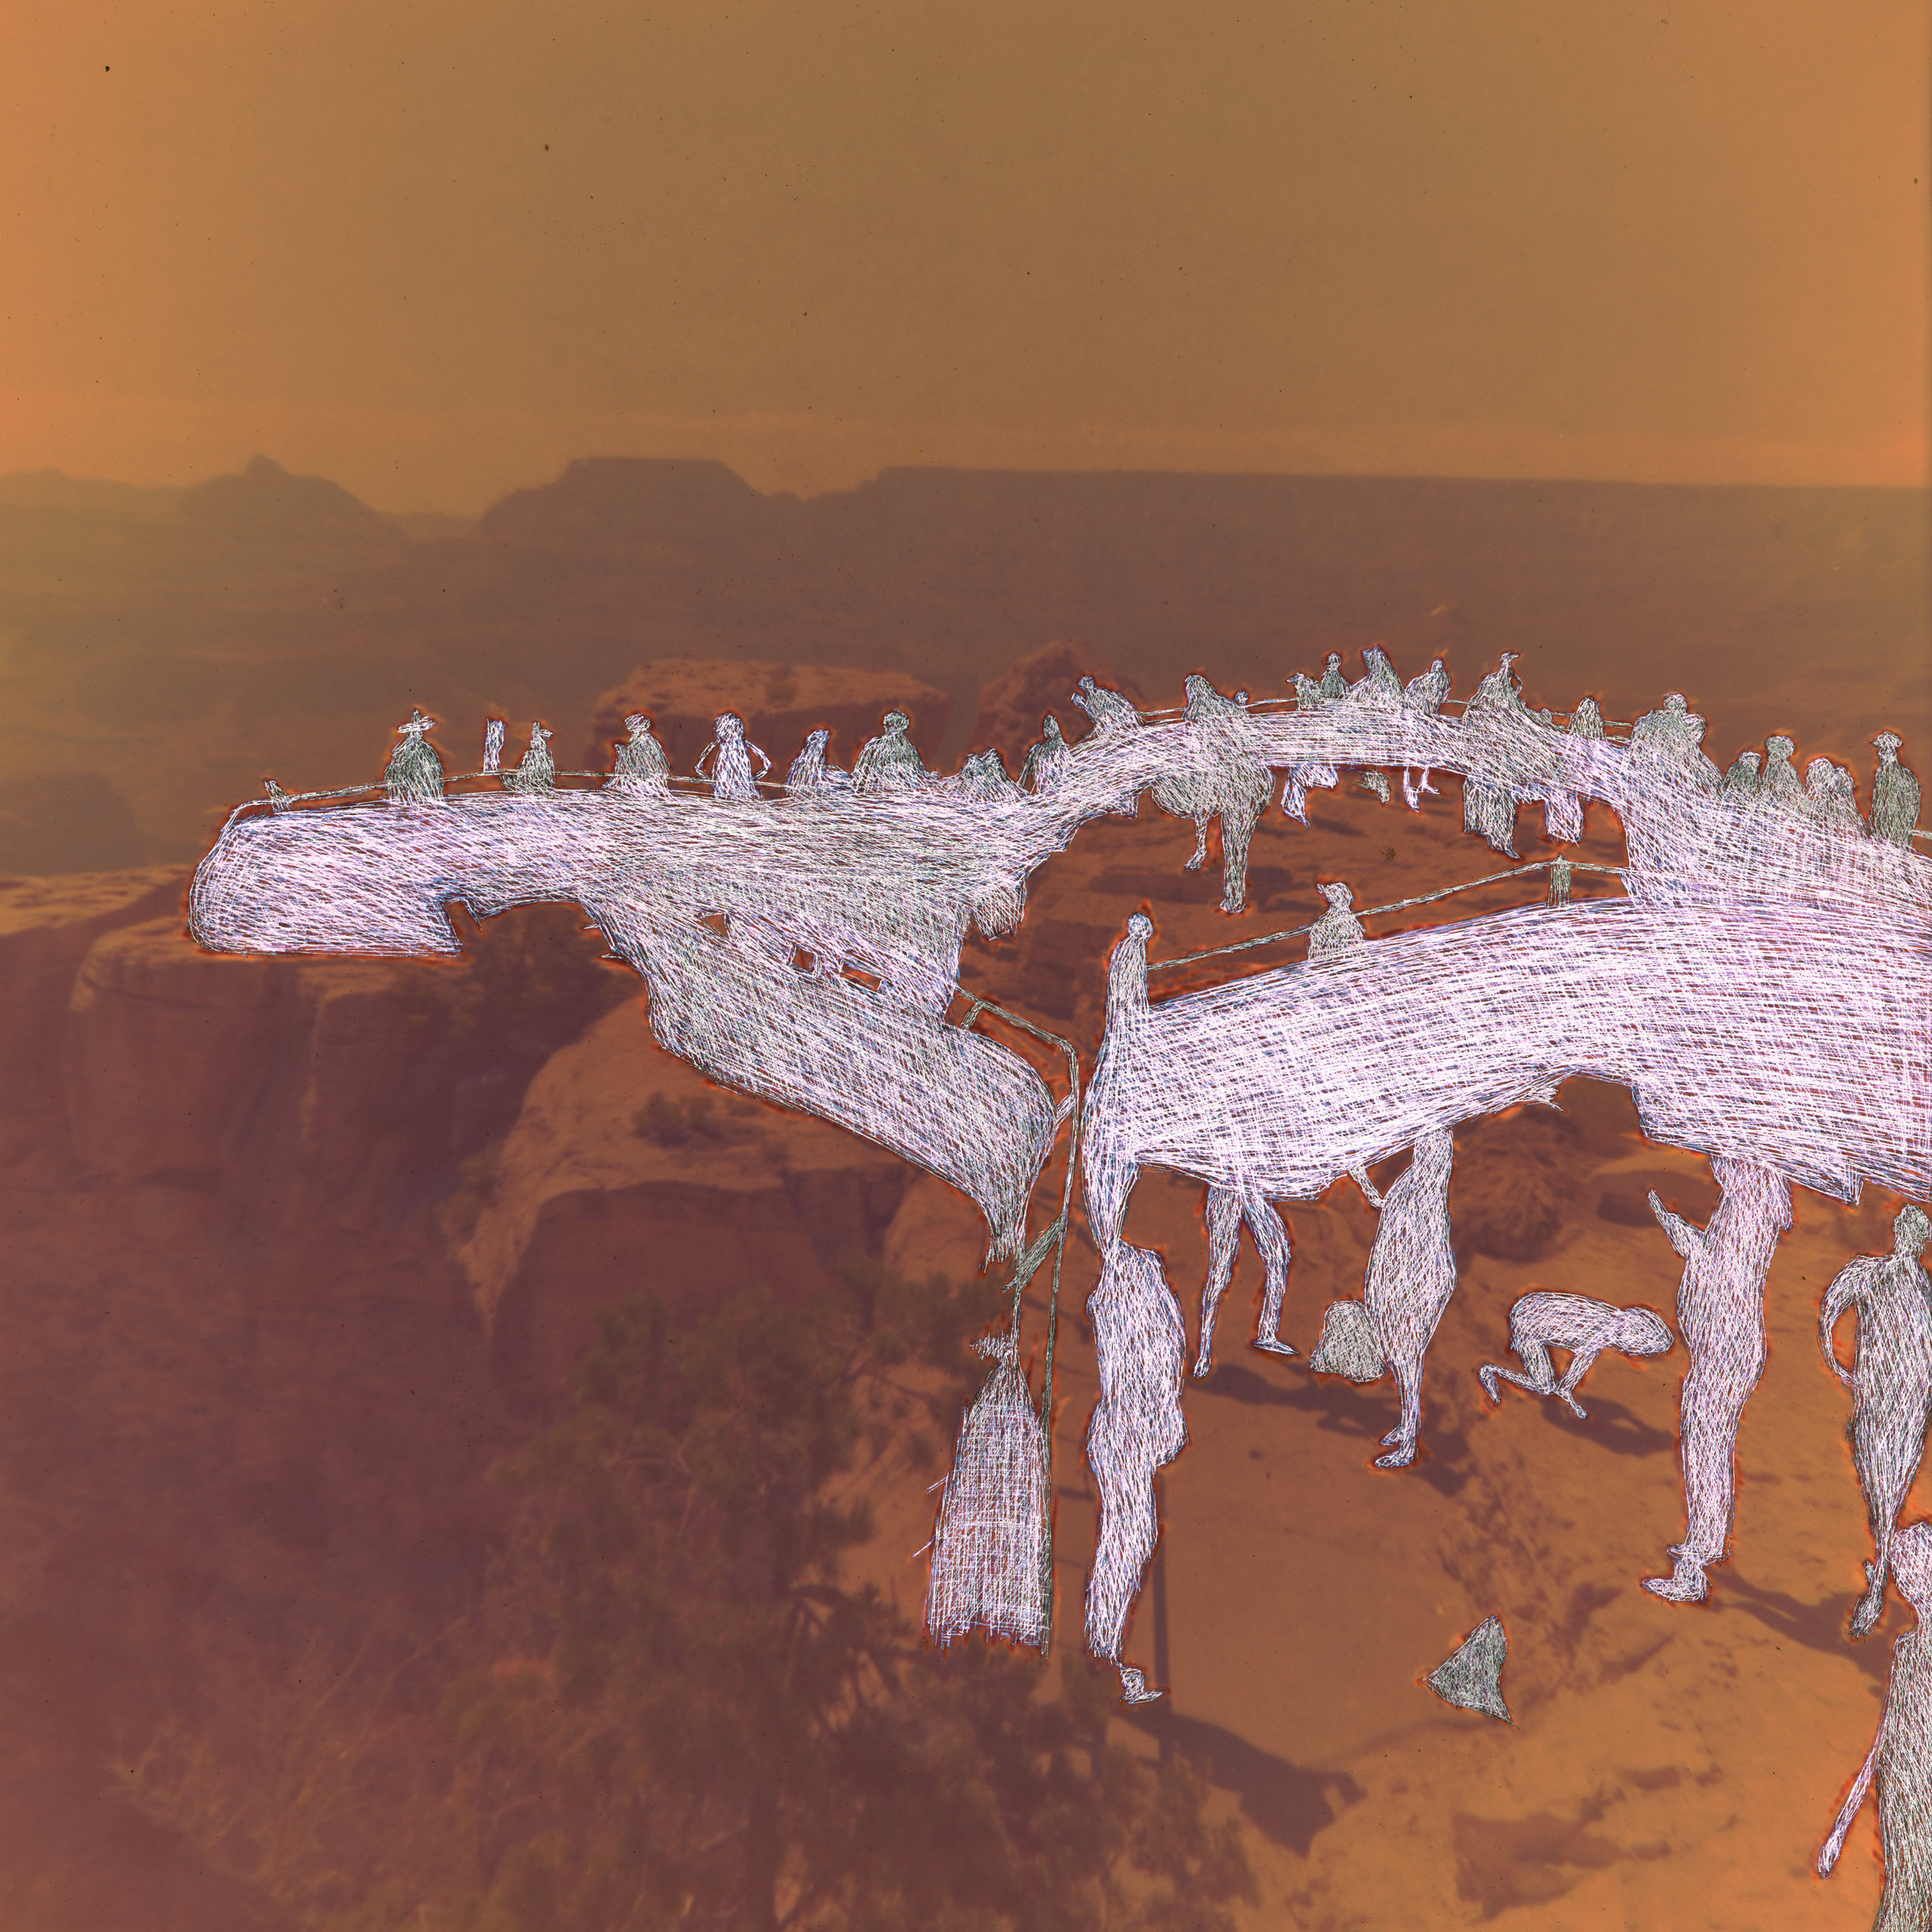 canyon_tourist001.jpg